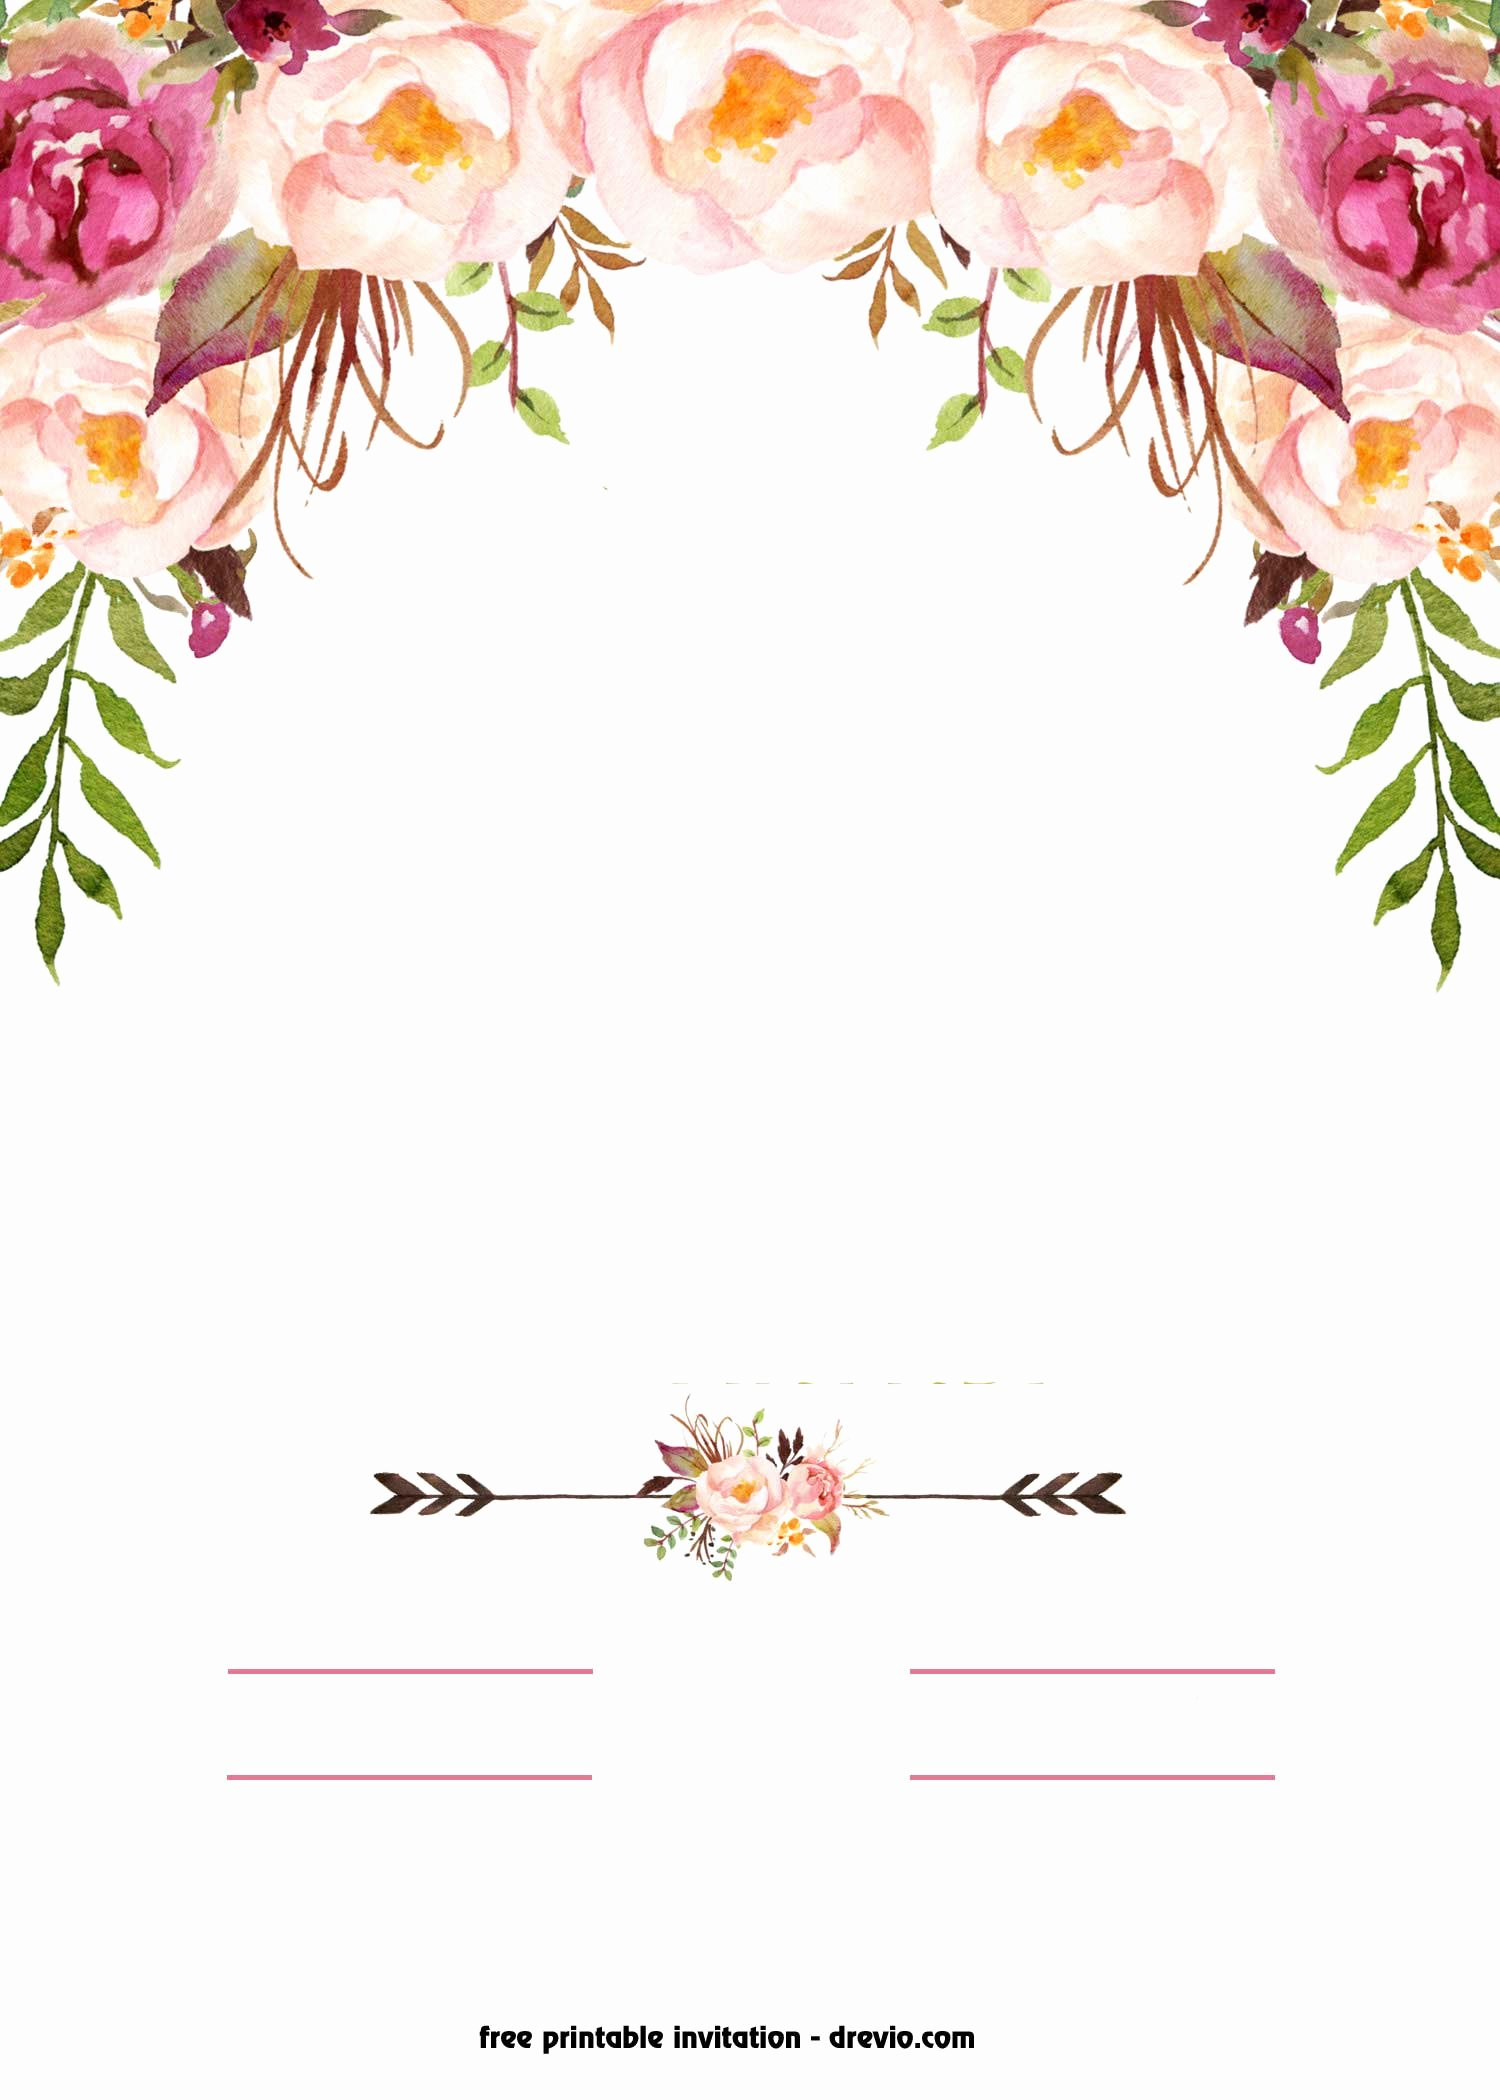 Flower Invitation Template Beautiful Free Printable Boho Chic Flower Baby Shower Invitation